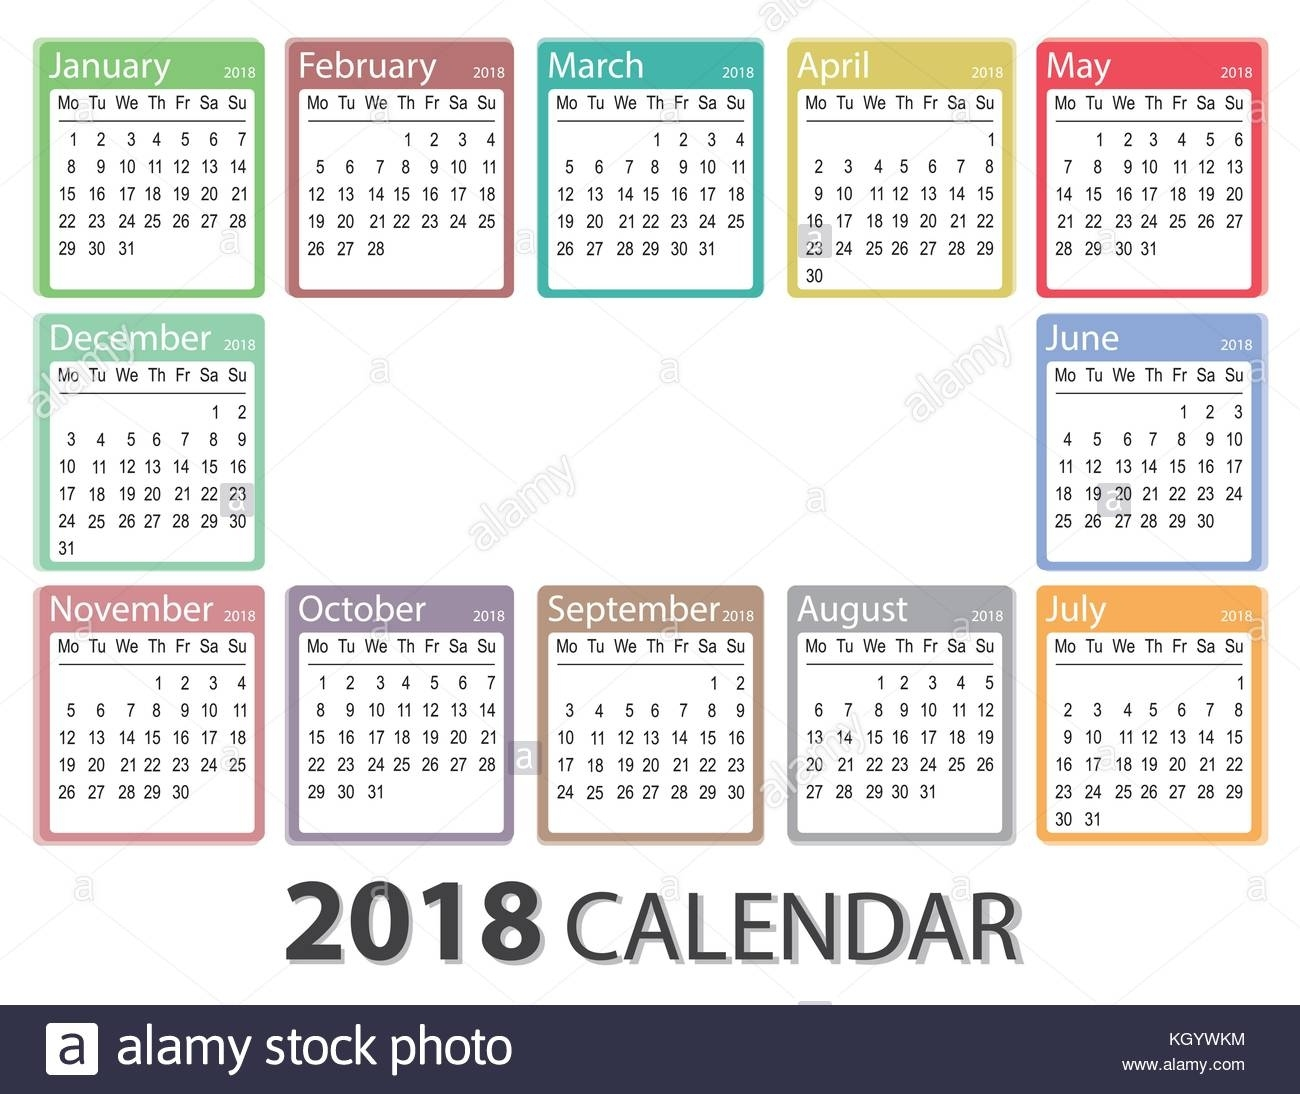 2018 Year Calendar, Week Starts On Monday, Monthly Calendar Template 5 Year Monthly Calendar